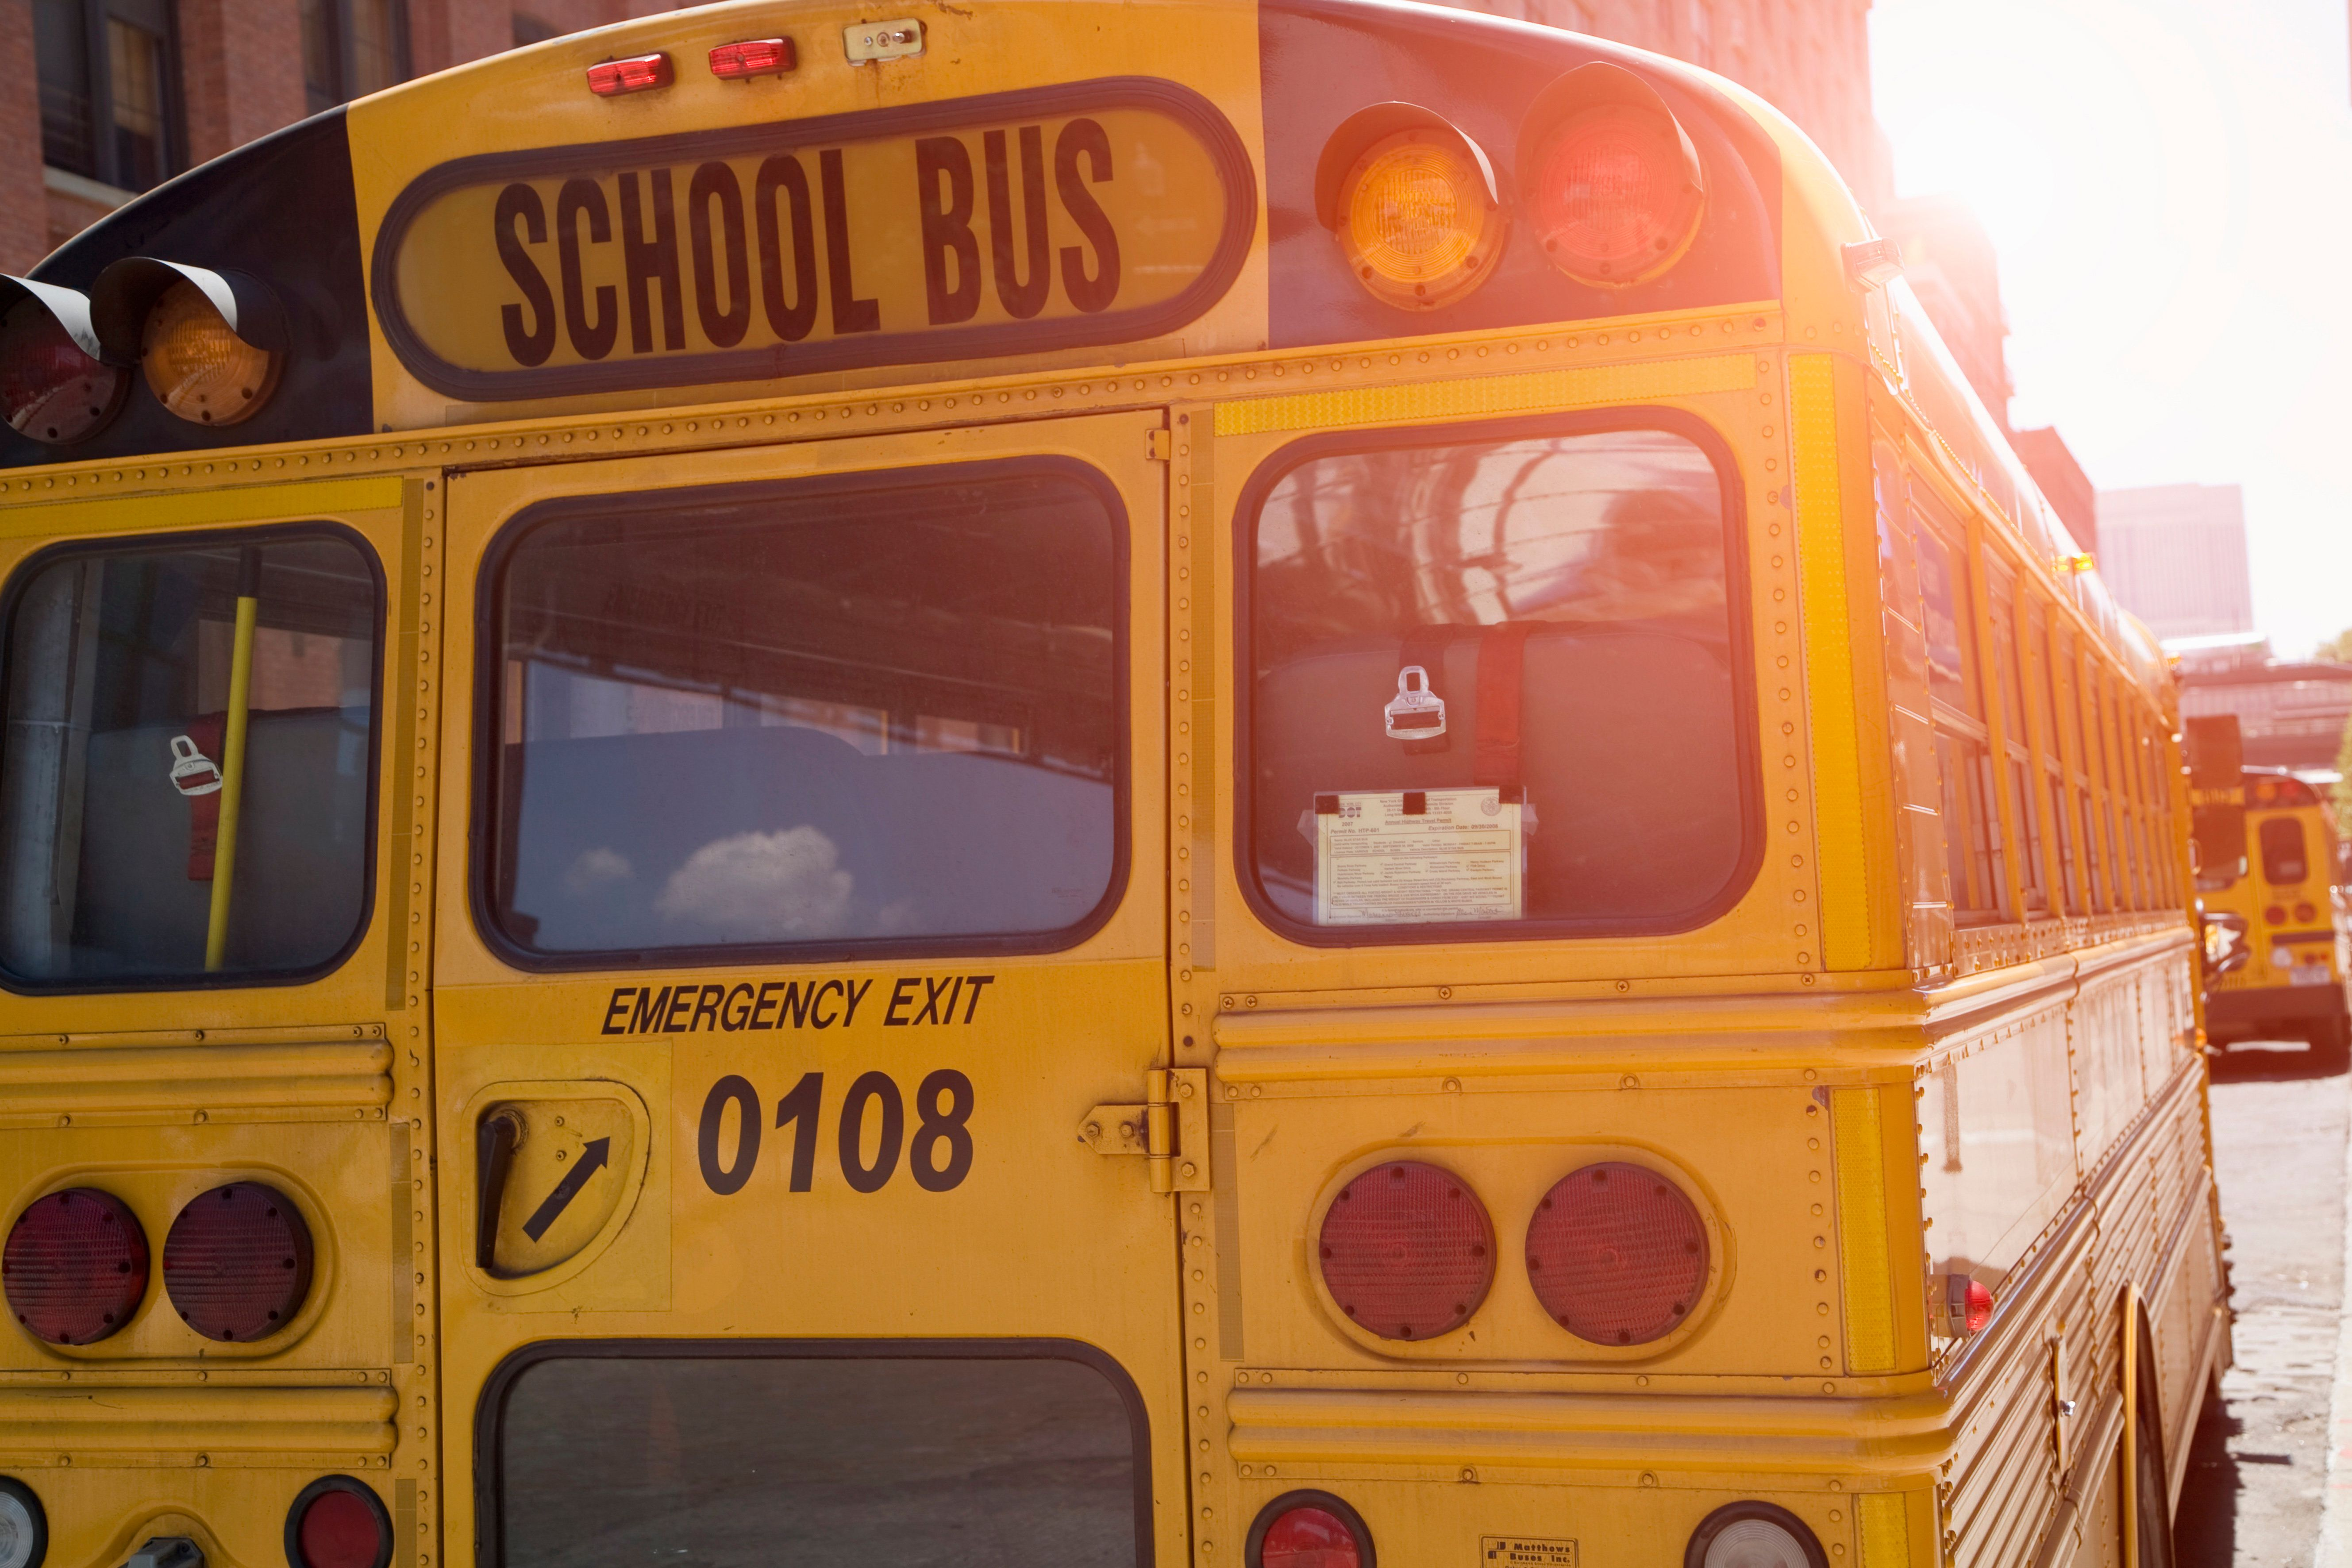 US School Bus Driver Who Raped 14-Year-Old Girl Gets No Prison